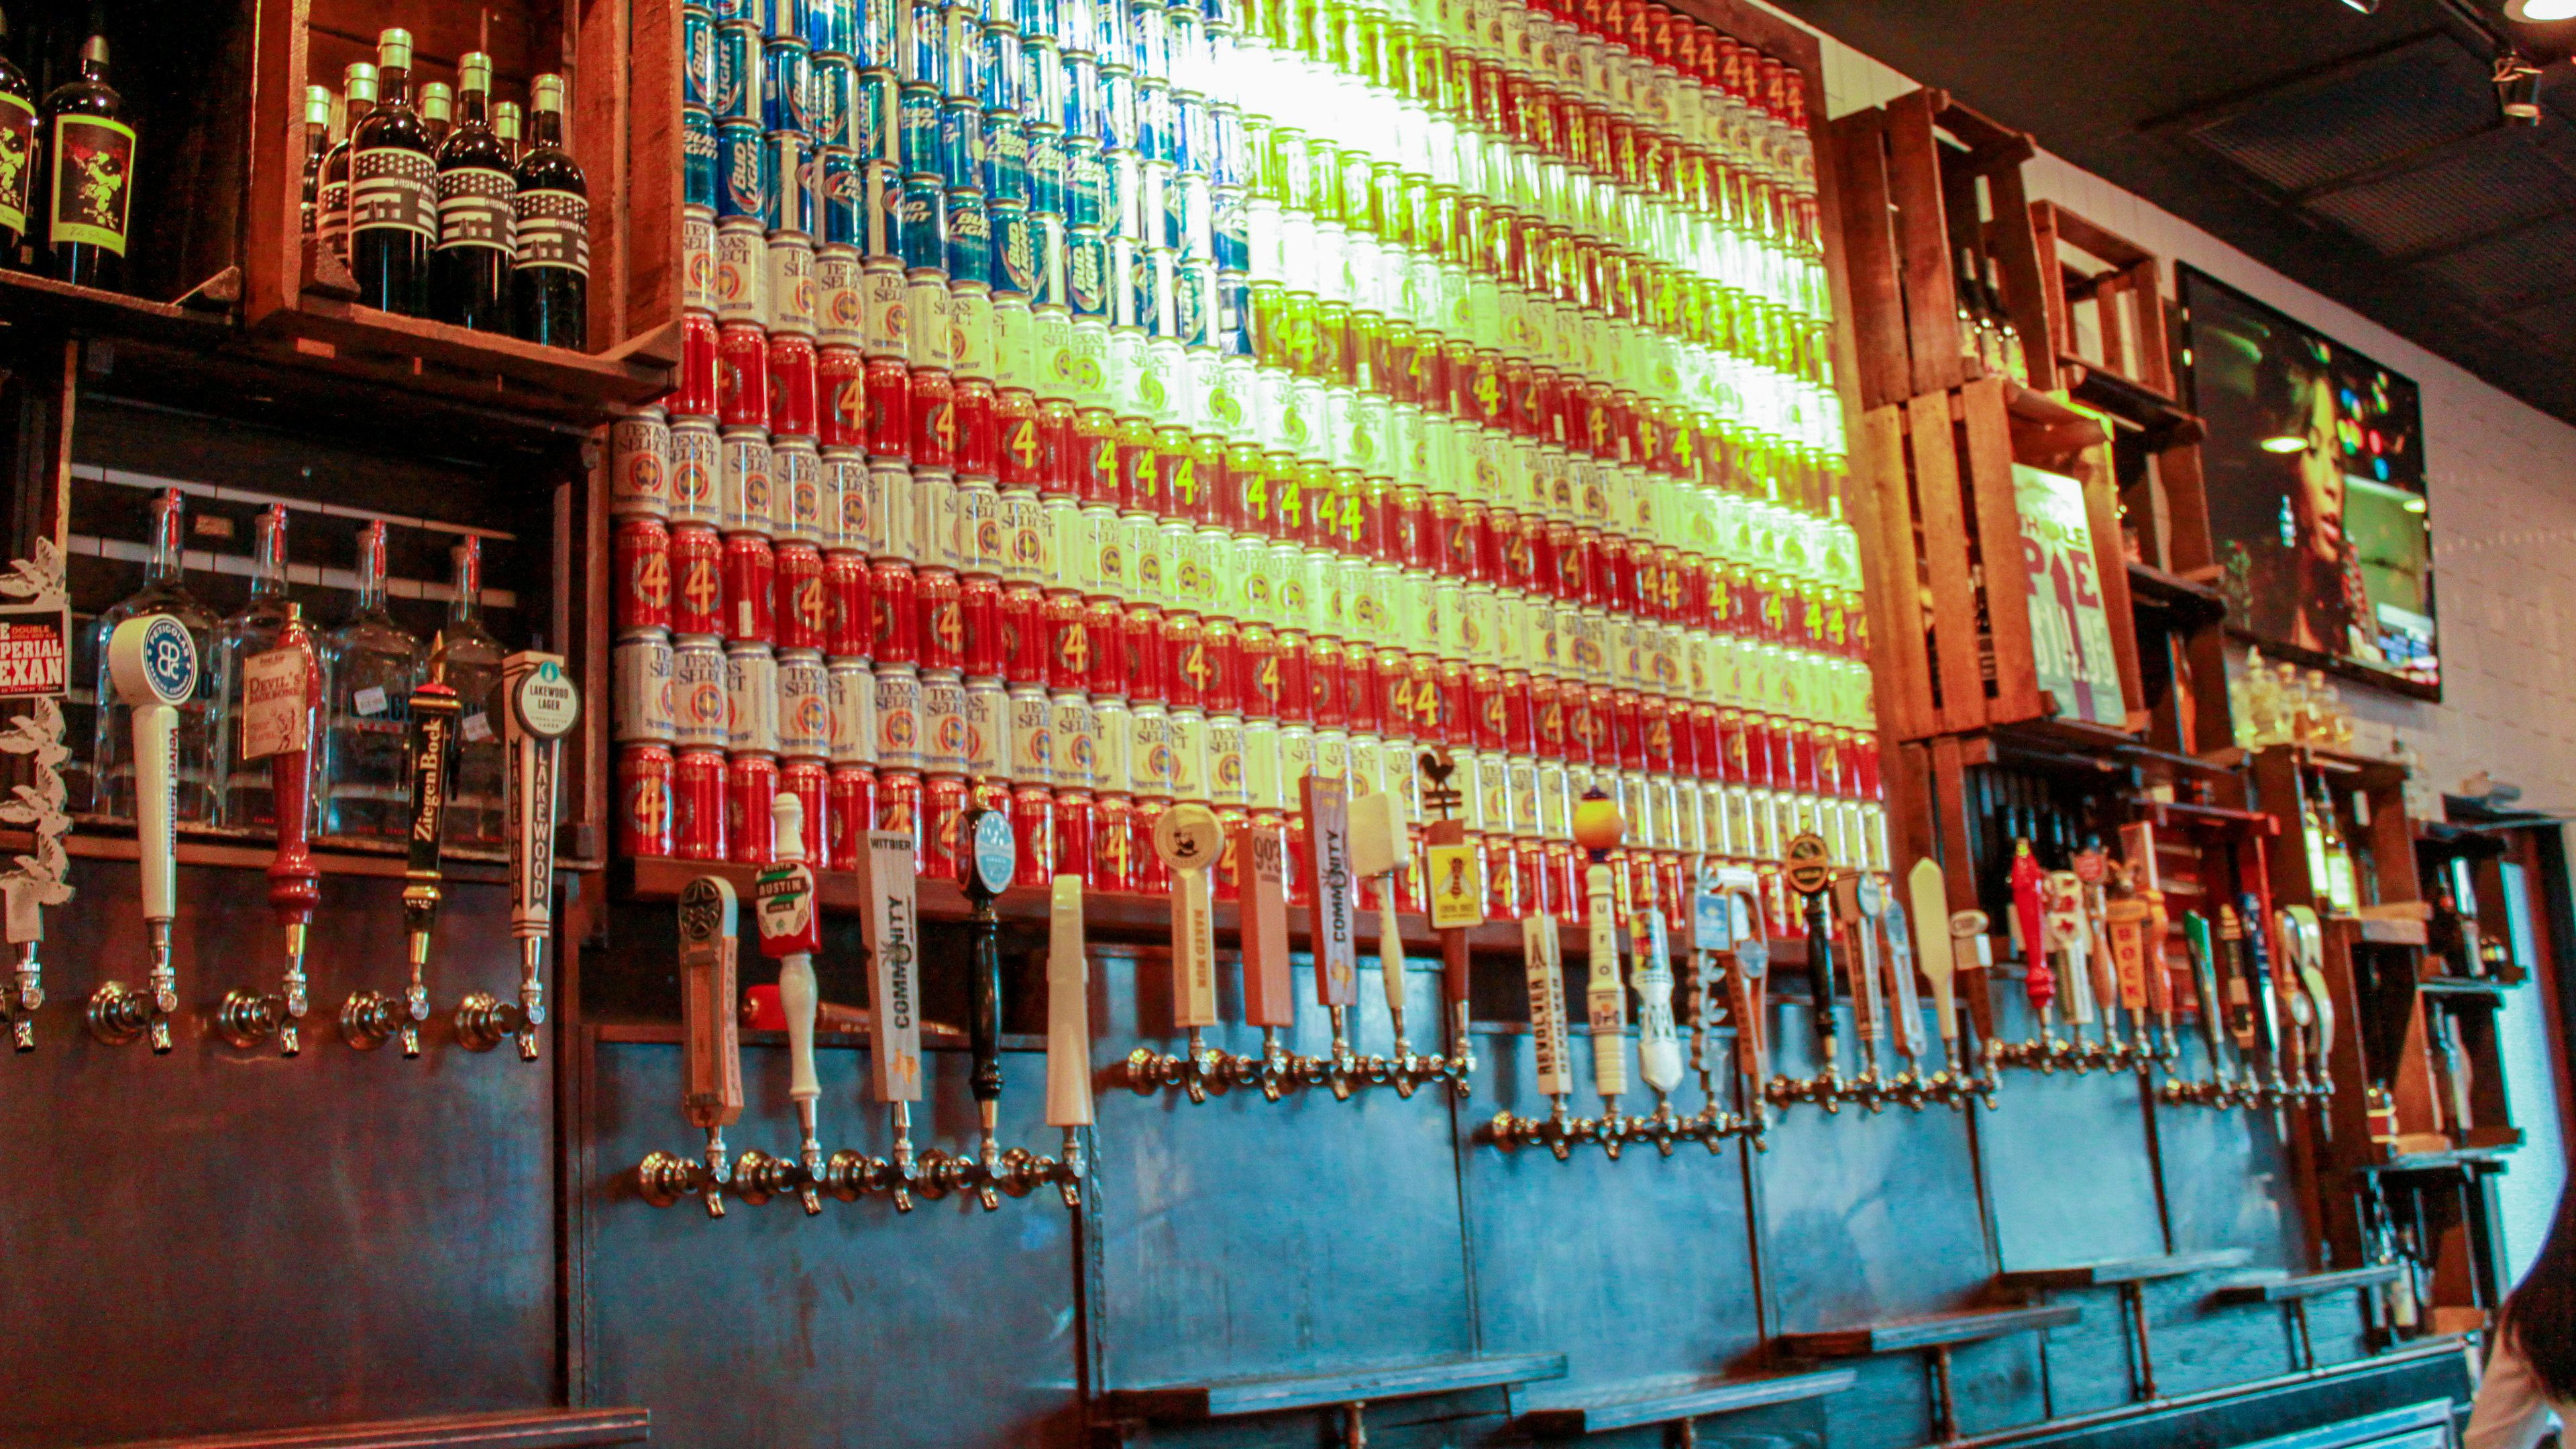 Bar with an American flag made of beer cans in Dallas